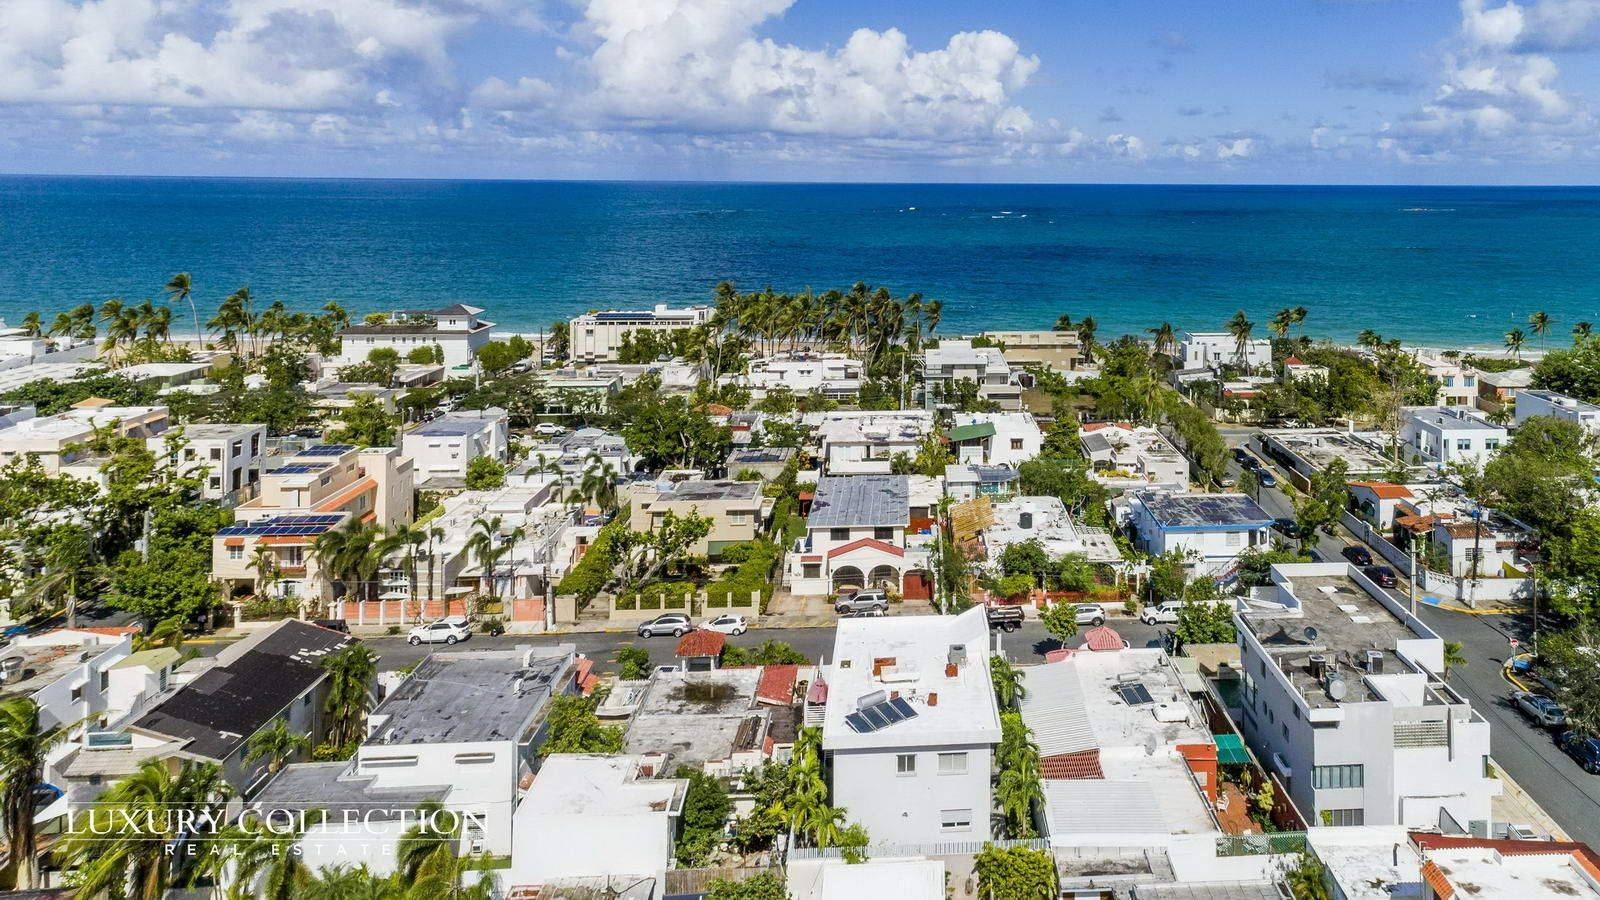 Beach house in Ocean Park for rent in Condado, Just 100 meters away from the most spectacular beach in San Juan. Great investment opportunity for Airbnb.